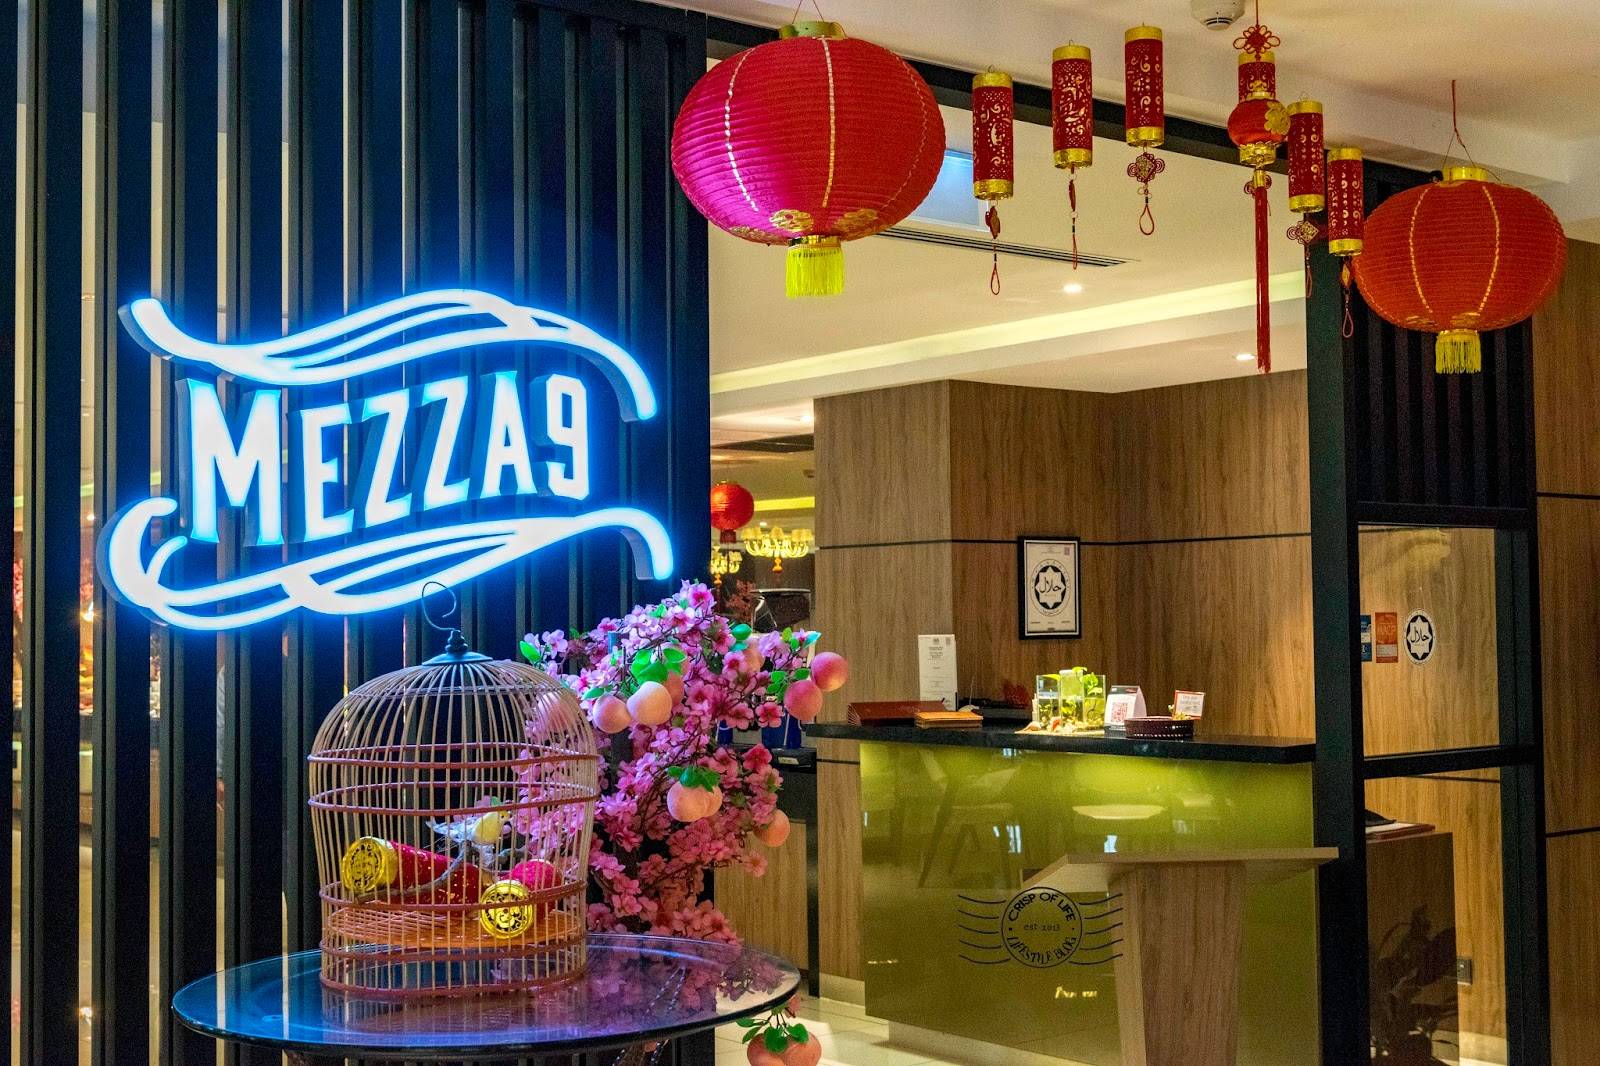 Chinese New Year Dinner Buffet 2018 Mezza 9 iconic hotel